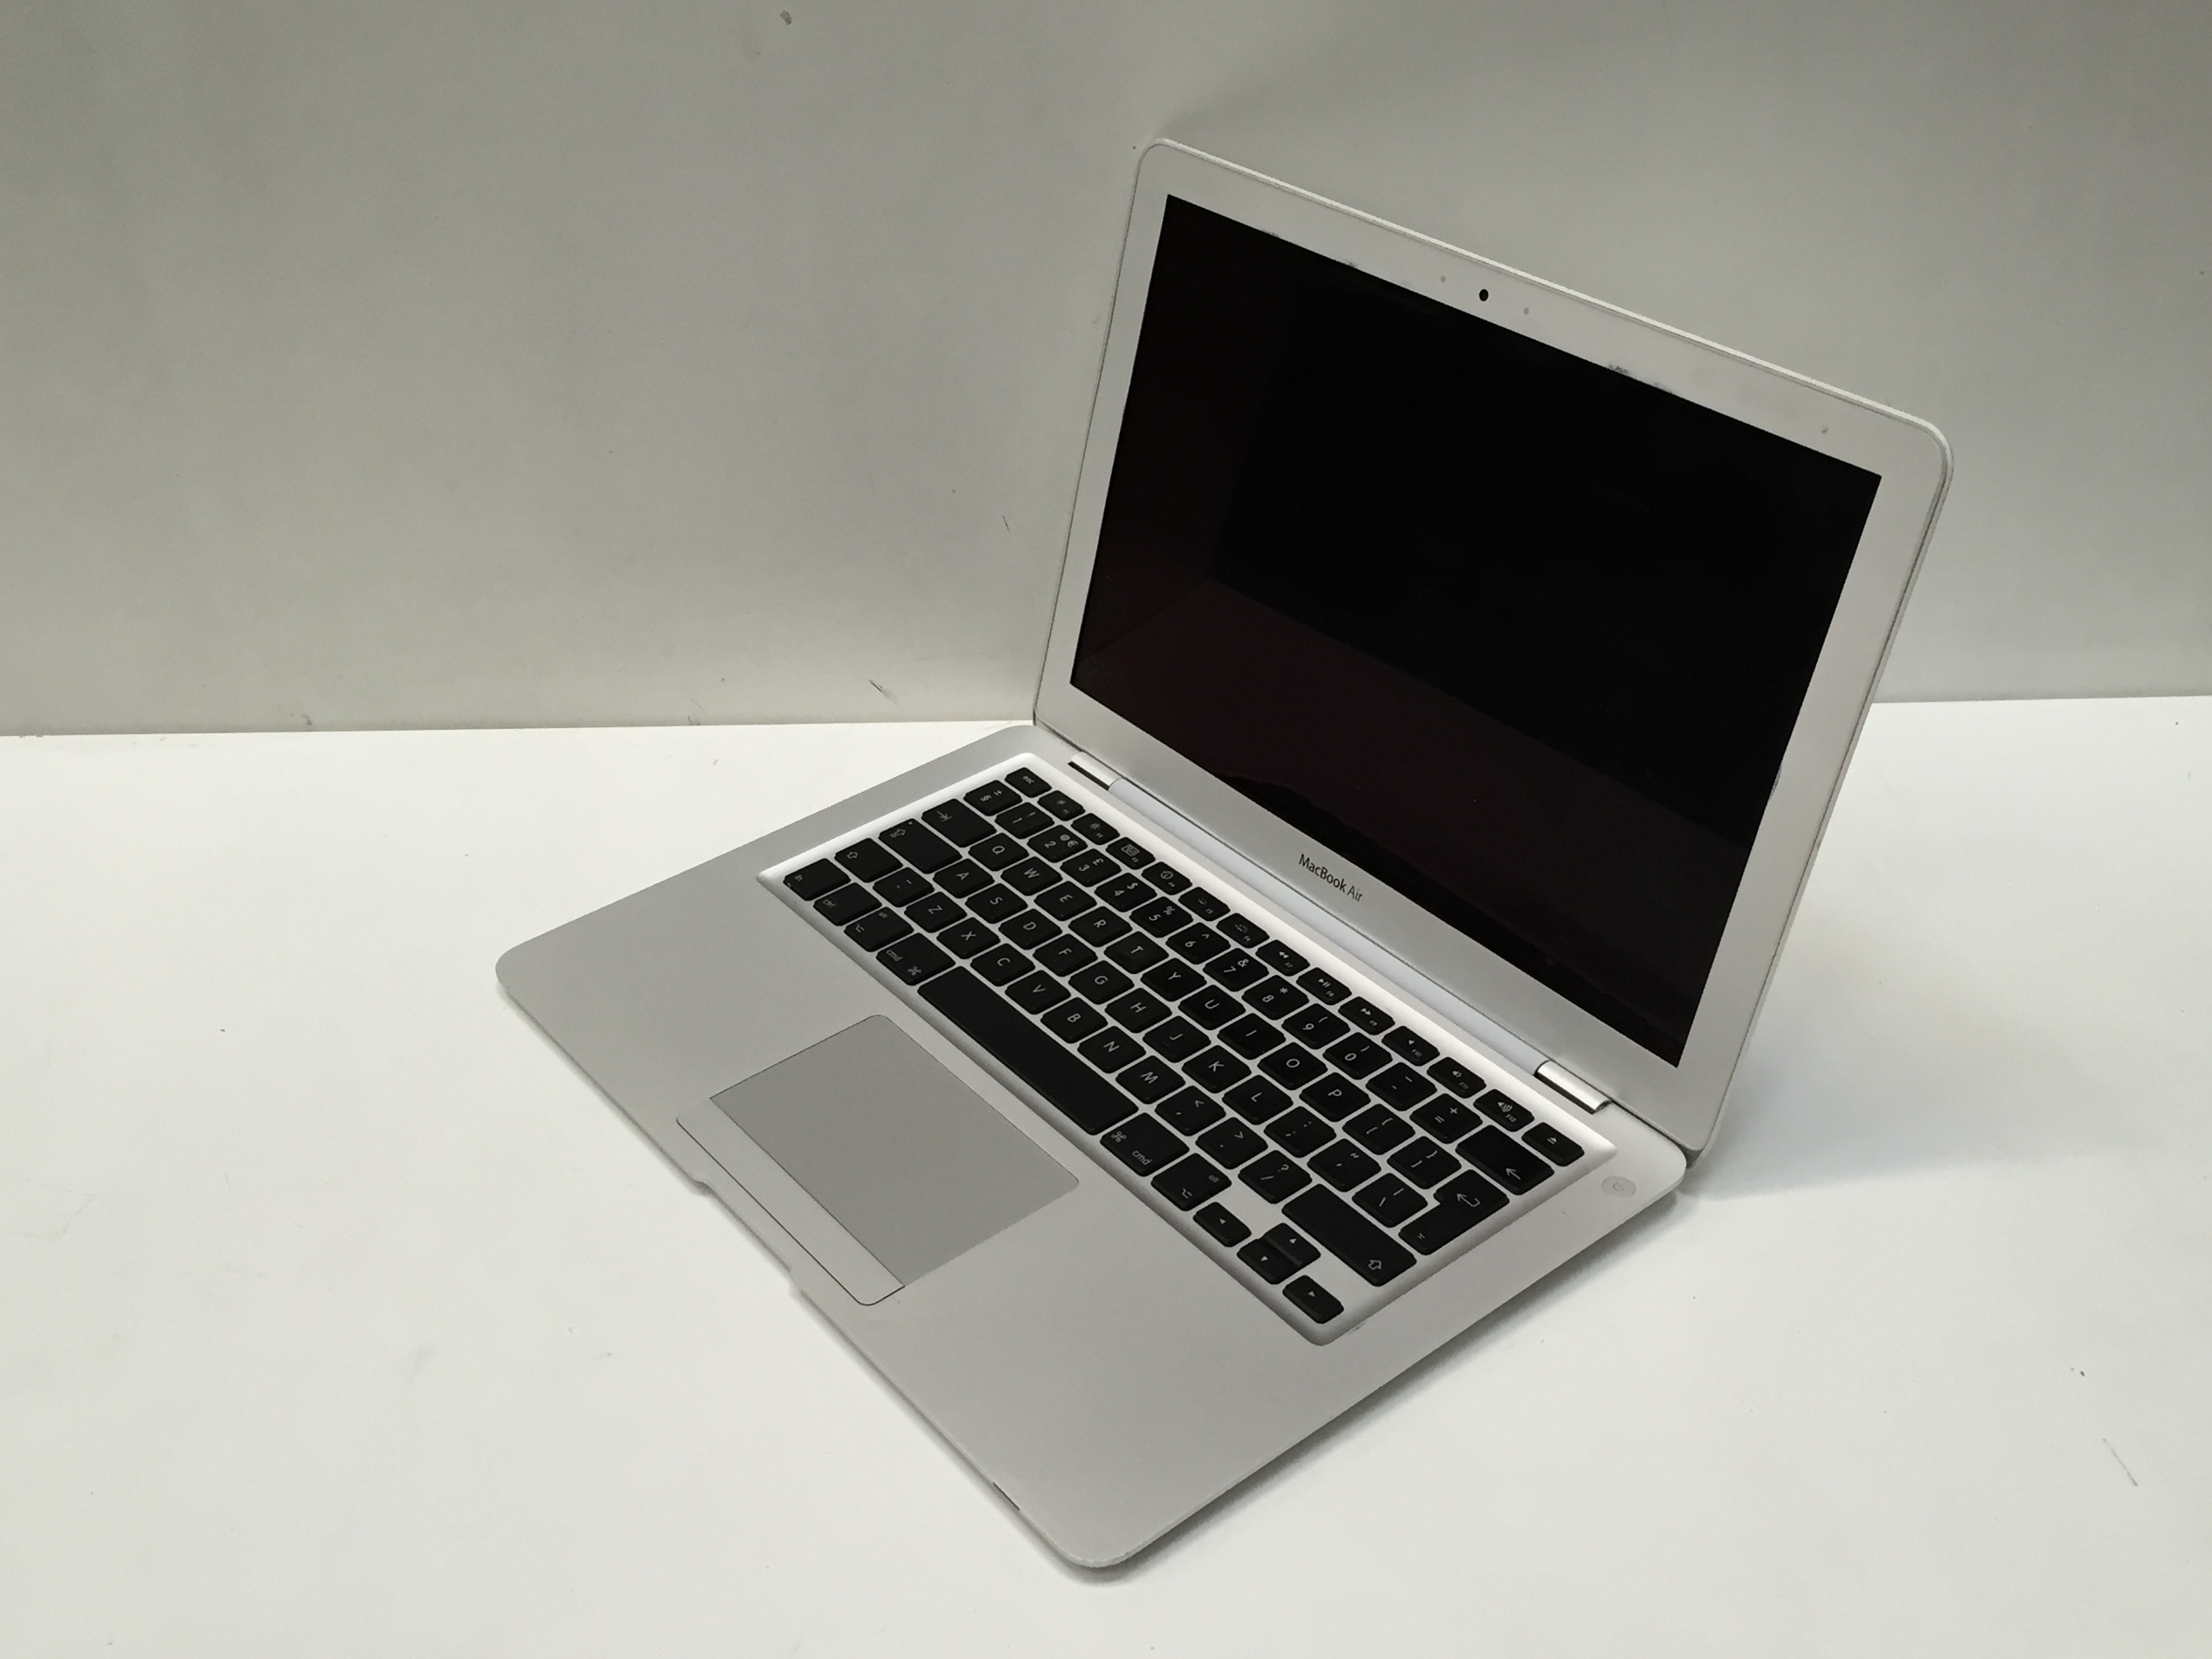 Apple MacBook Air 13.3inch 1.86GHz 2GB Ram 128GB SSD MB940B/A A1304